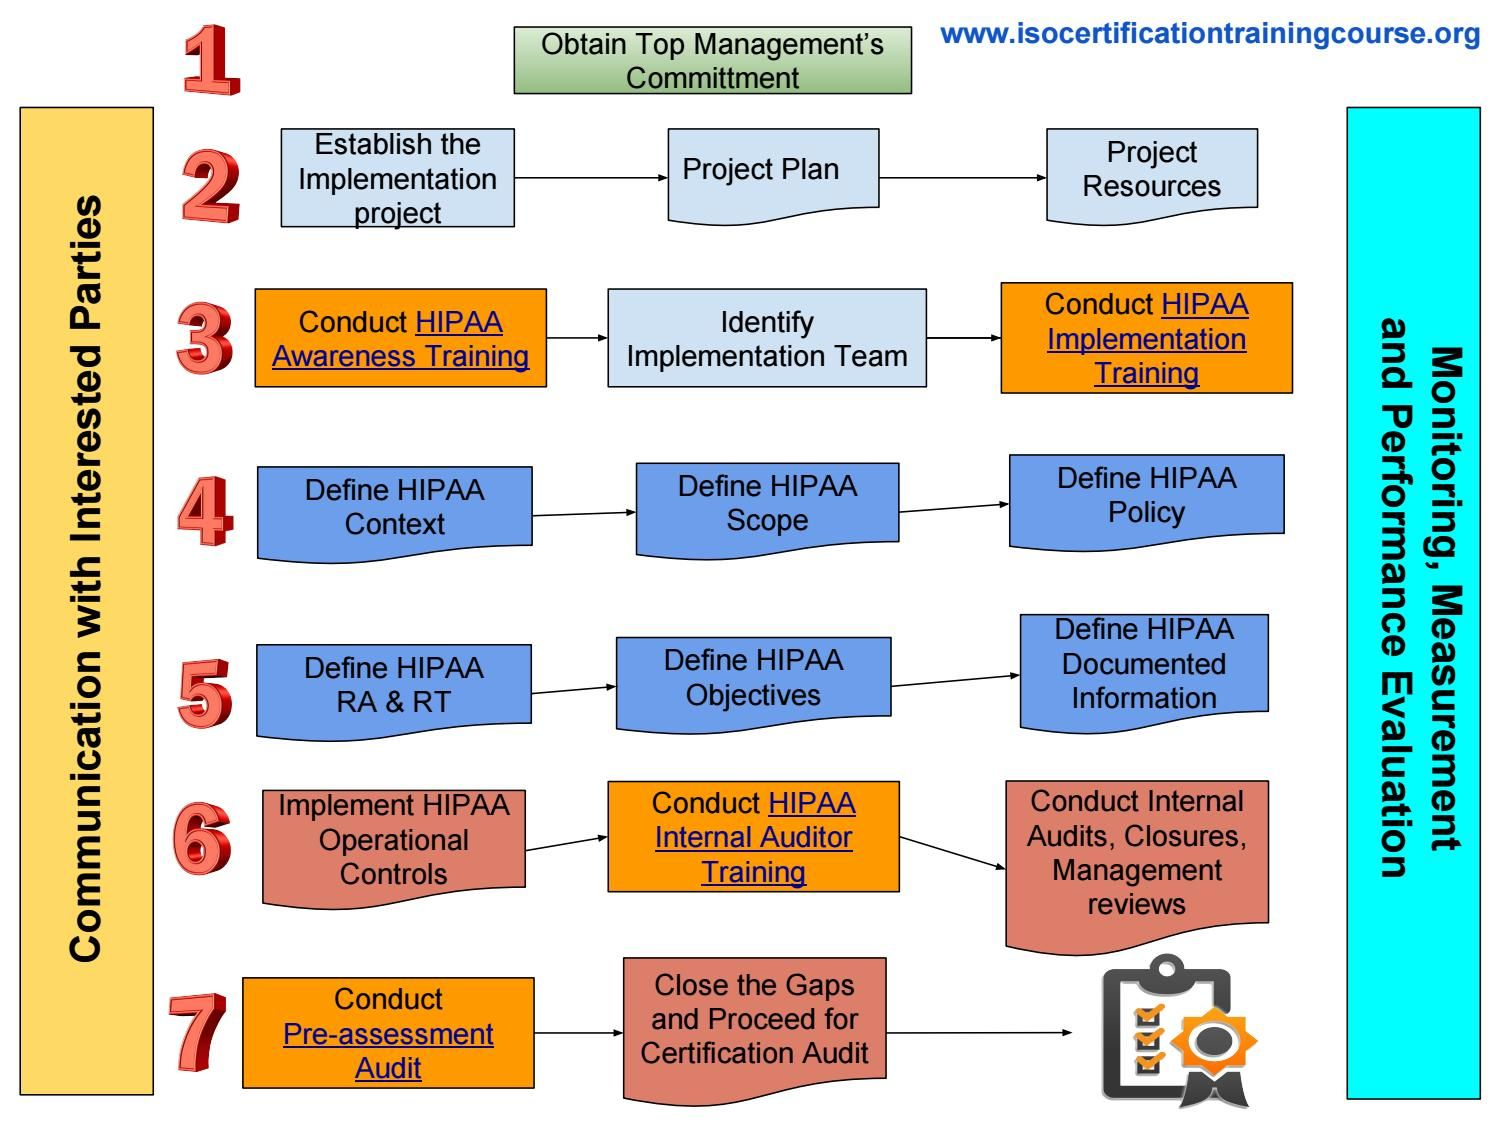 medium resolution of for successful results auditee organizations are required to follow these steps as mentioned in the process flow diagram to achieve hipaa certification